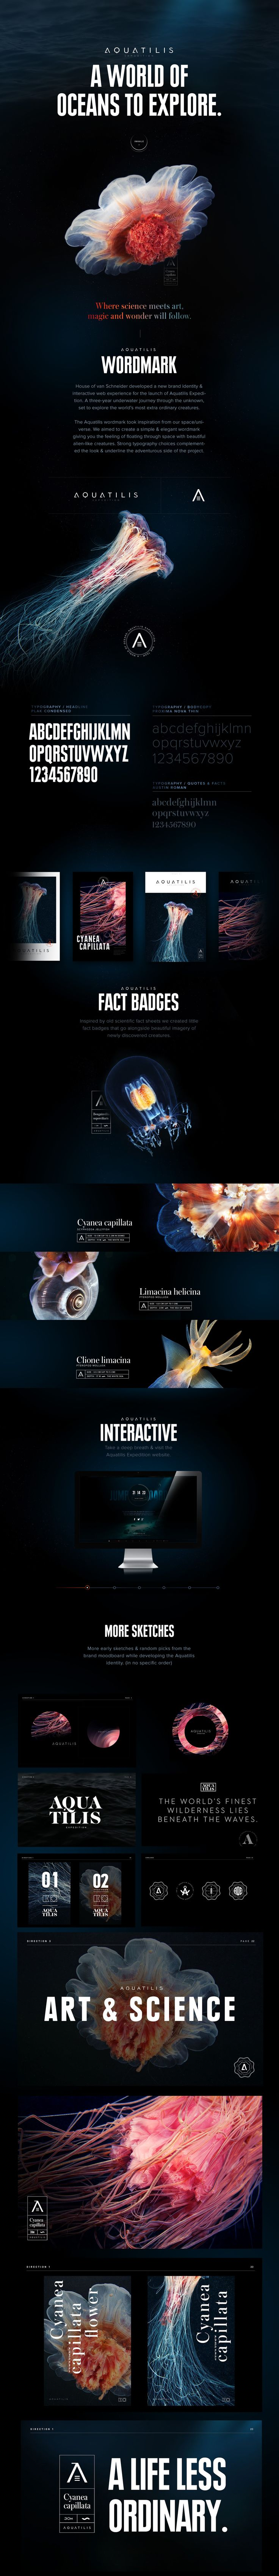 Aquatilis Expedition on Behance